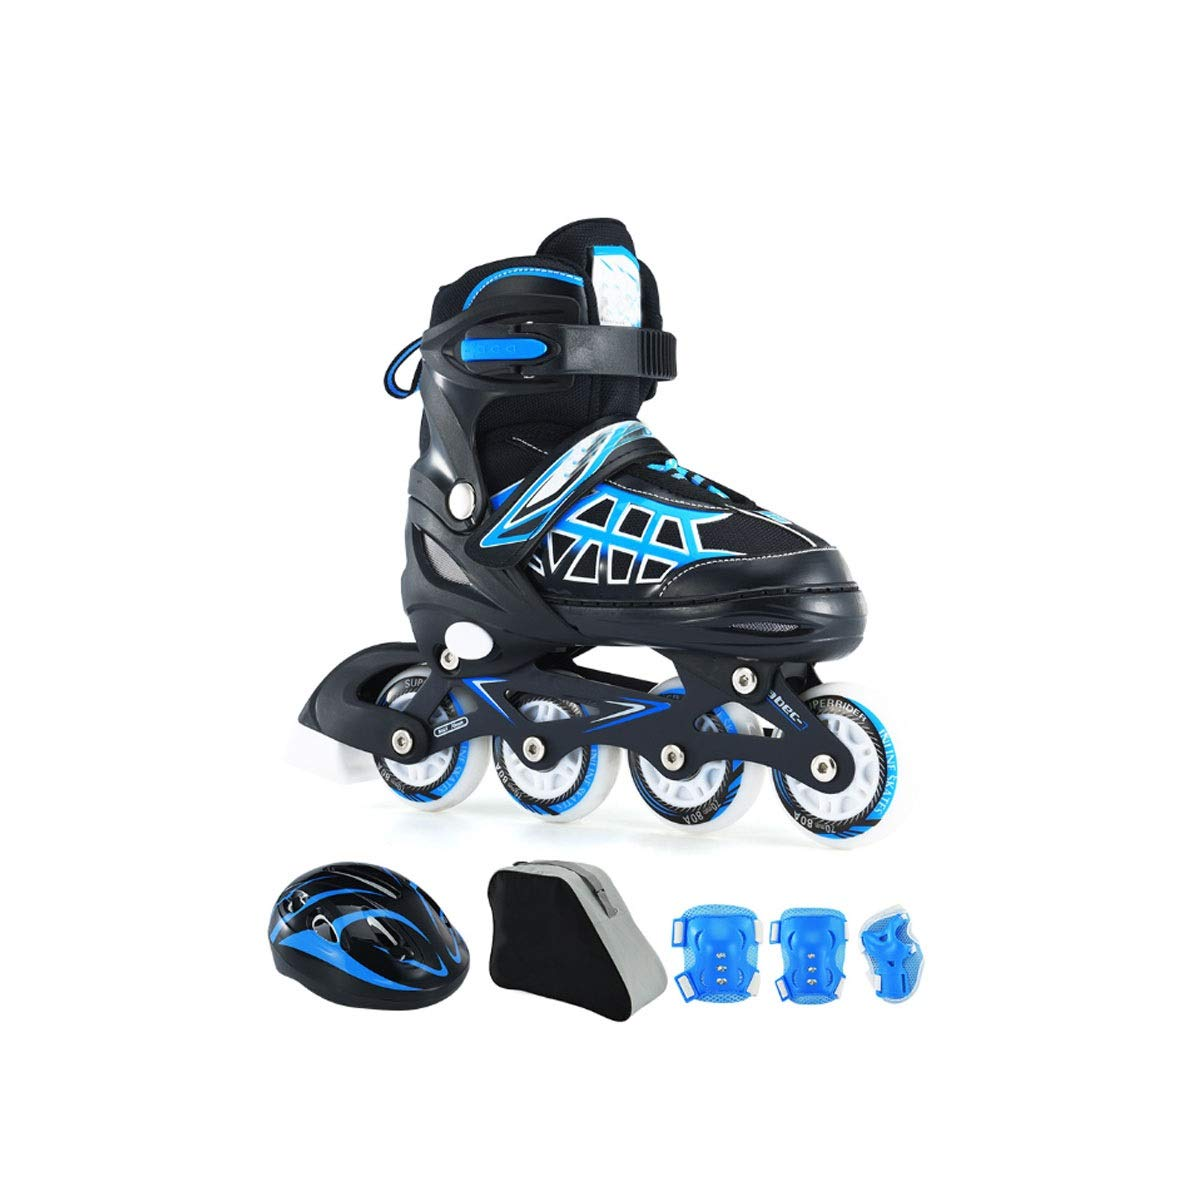 Hengxiang Fitness Inline Skates, Children's Skates, Adjustable Four-wheel Size, Thicken Aluminum Alloy Bracket, Sand Permeable Hole, And High-elastic PU Flash Wheel, Full Protective Gear, Red, Blue Wo